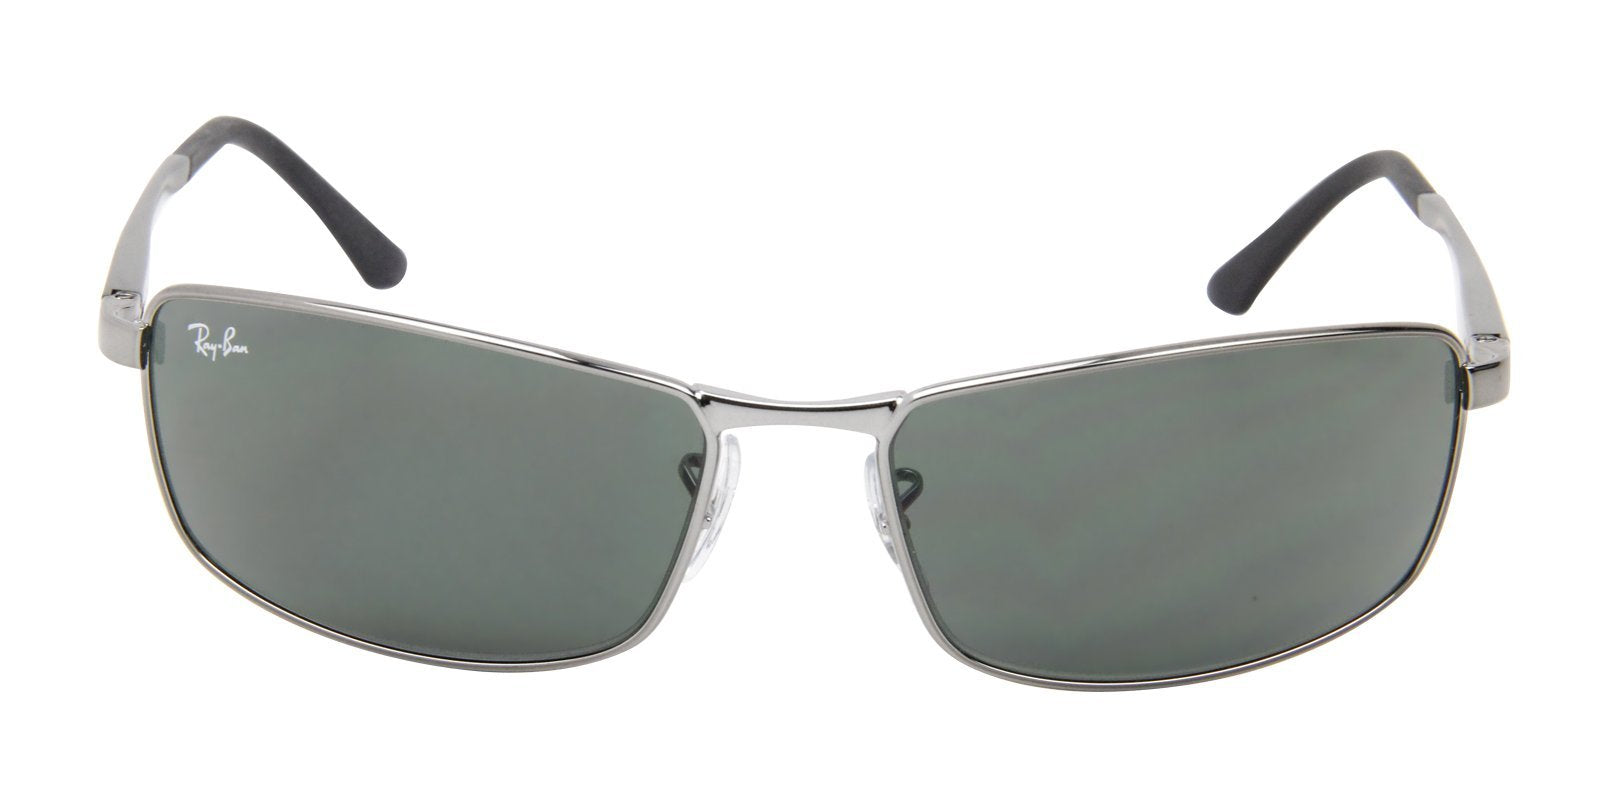 Ray Ban - RB3498 Gray Rectangular Men Sunglasses - 61mm-Sunglasses-Designer Eyes